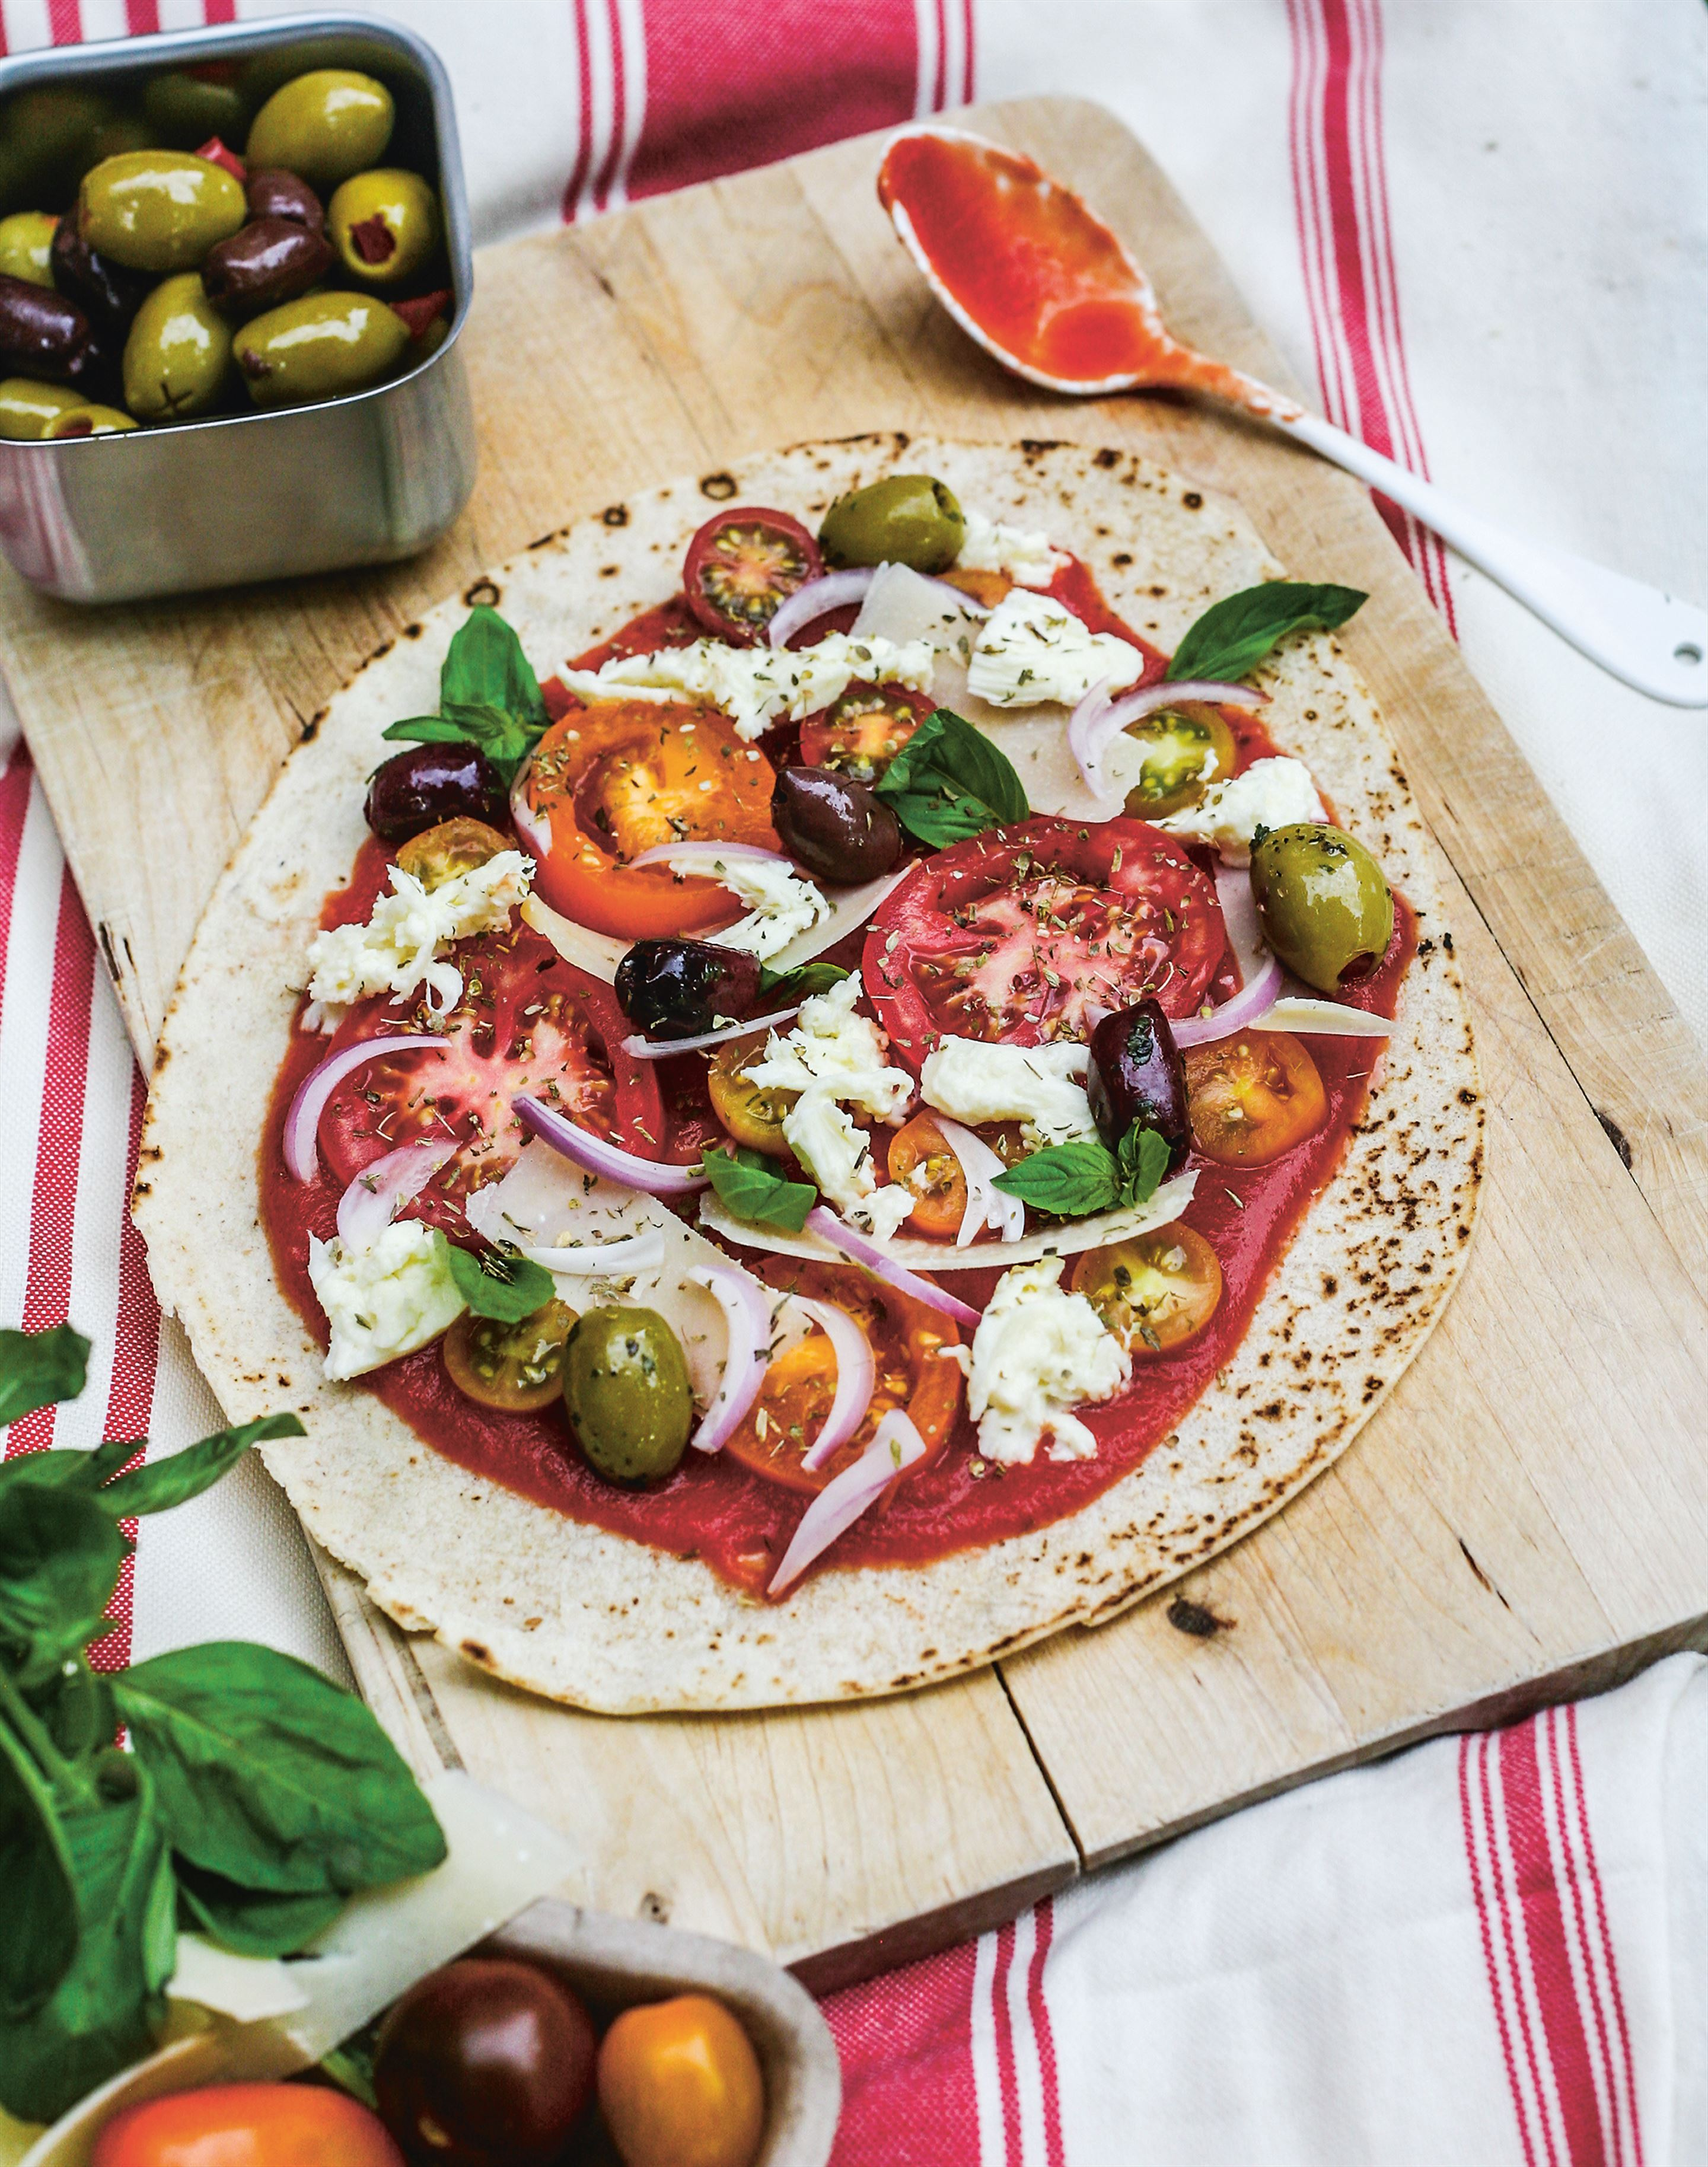 No-bake mediterranean flatbread pizza